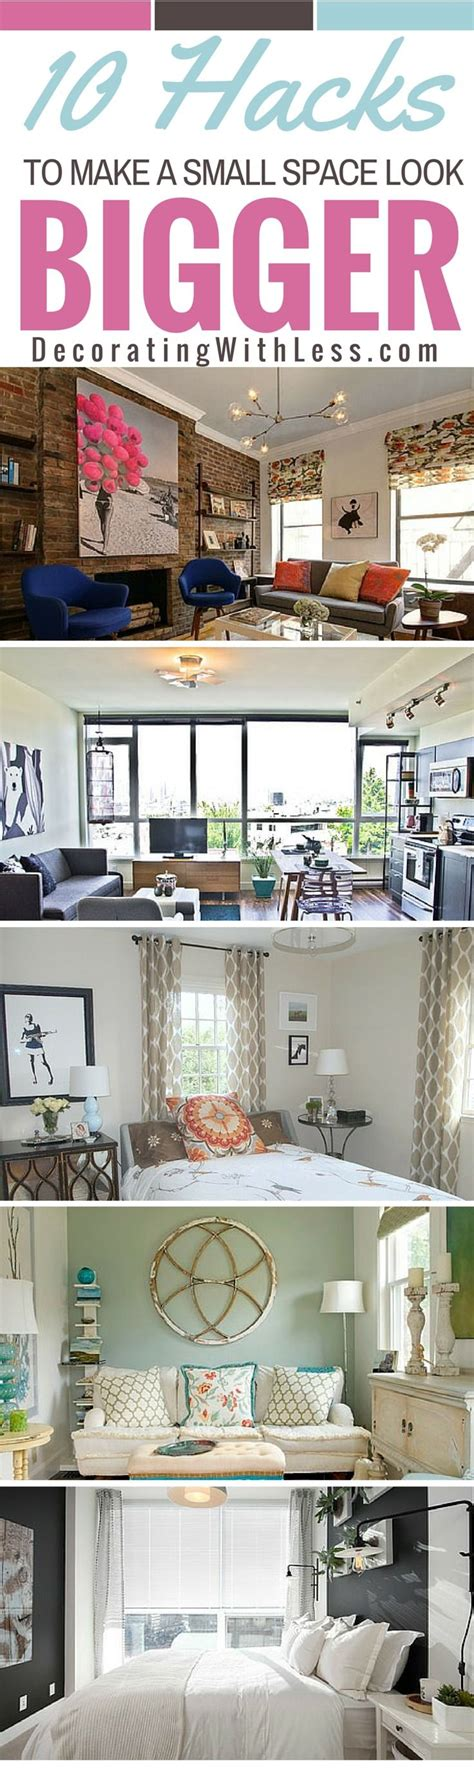 10 decor tips to make your house look bigger 10 hacks to make a small space look bigger there are